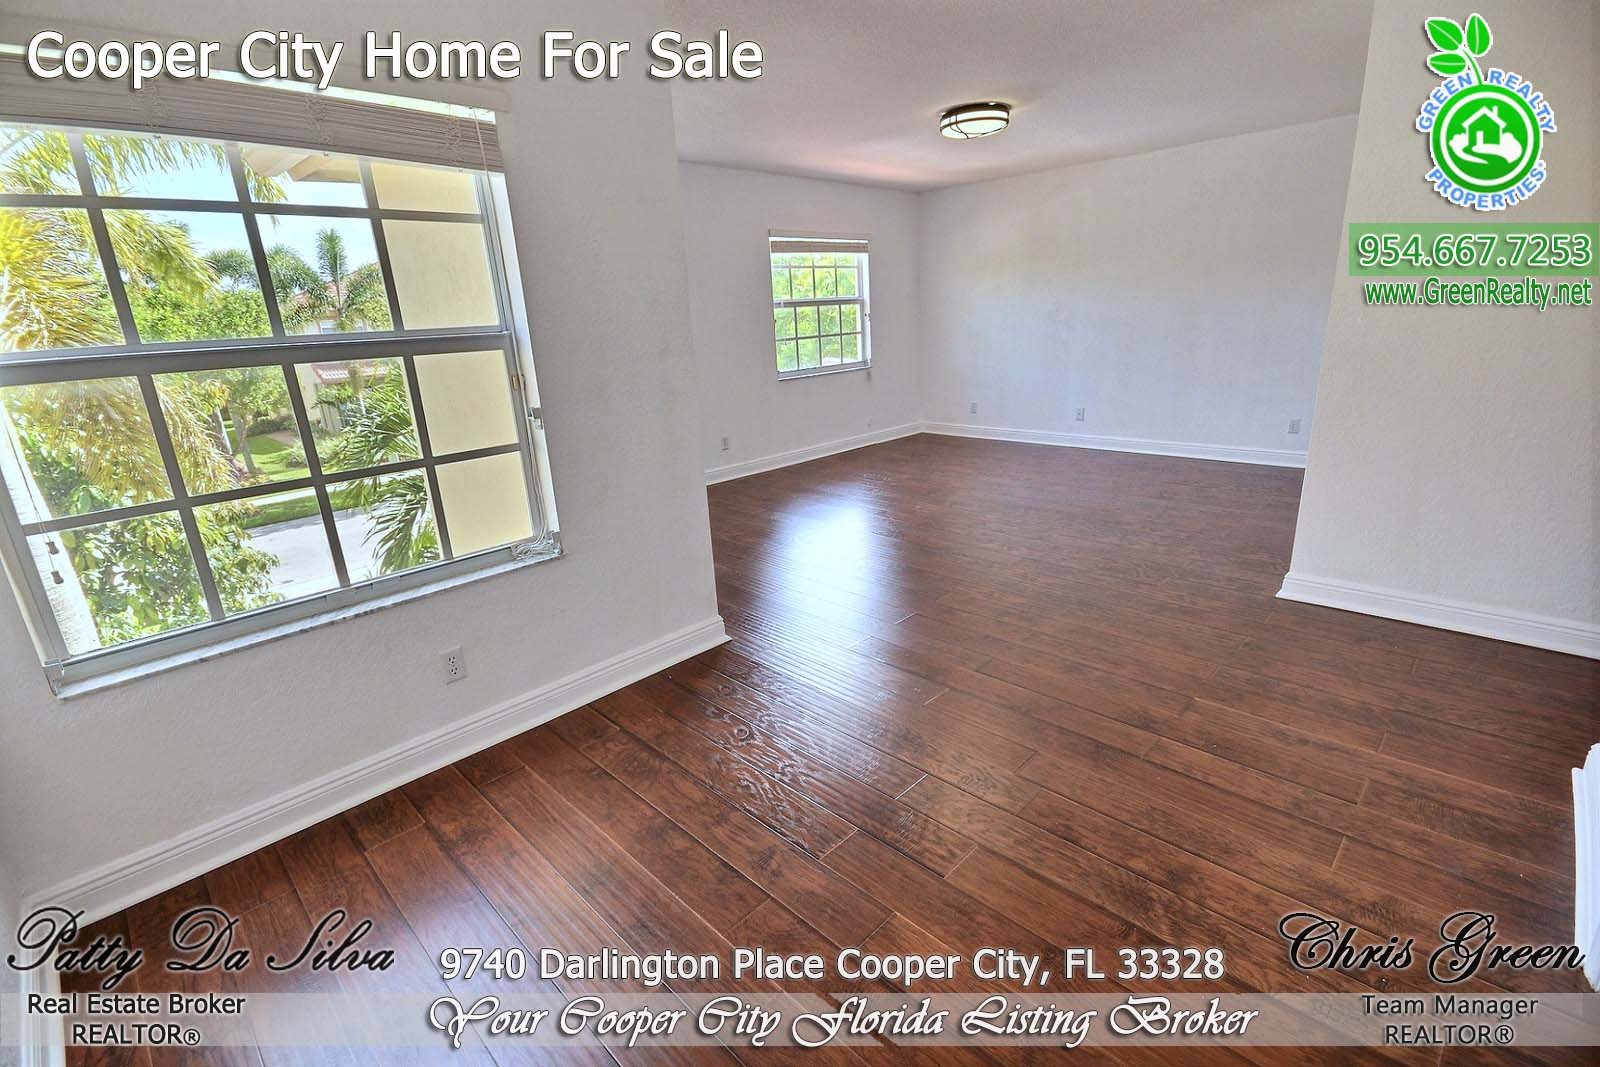 16 Cooper City Homes For Sale (1)